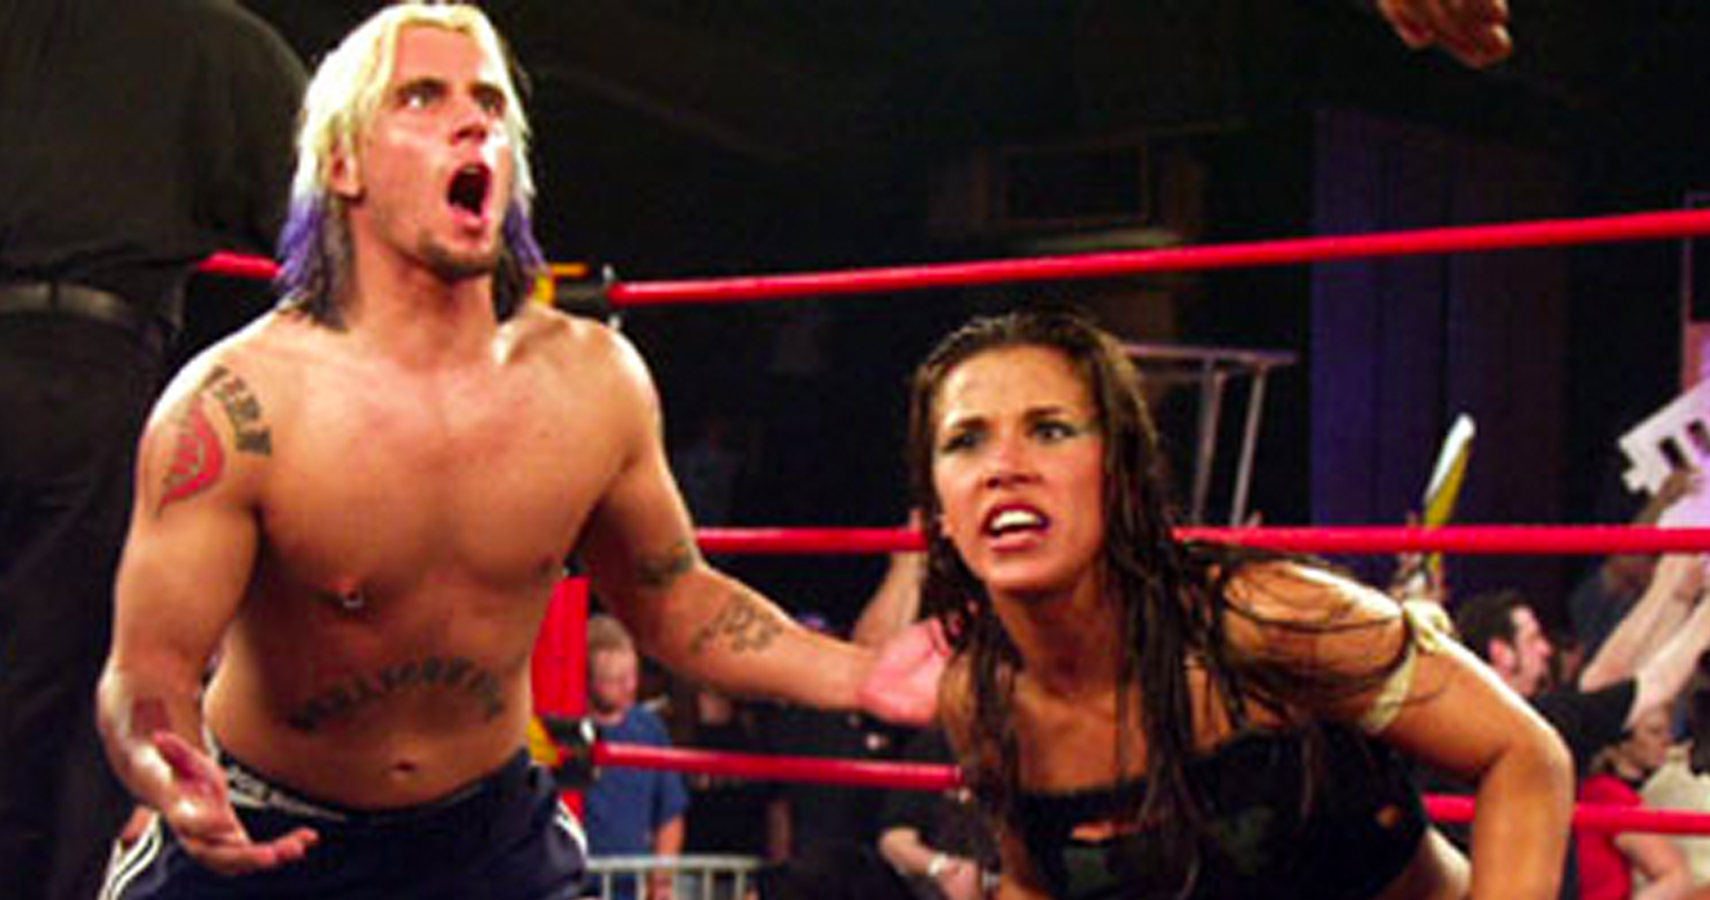 cm punk tna impact - photo #8